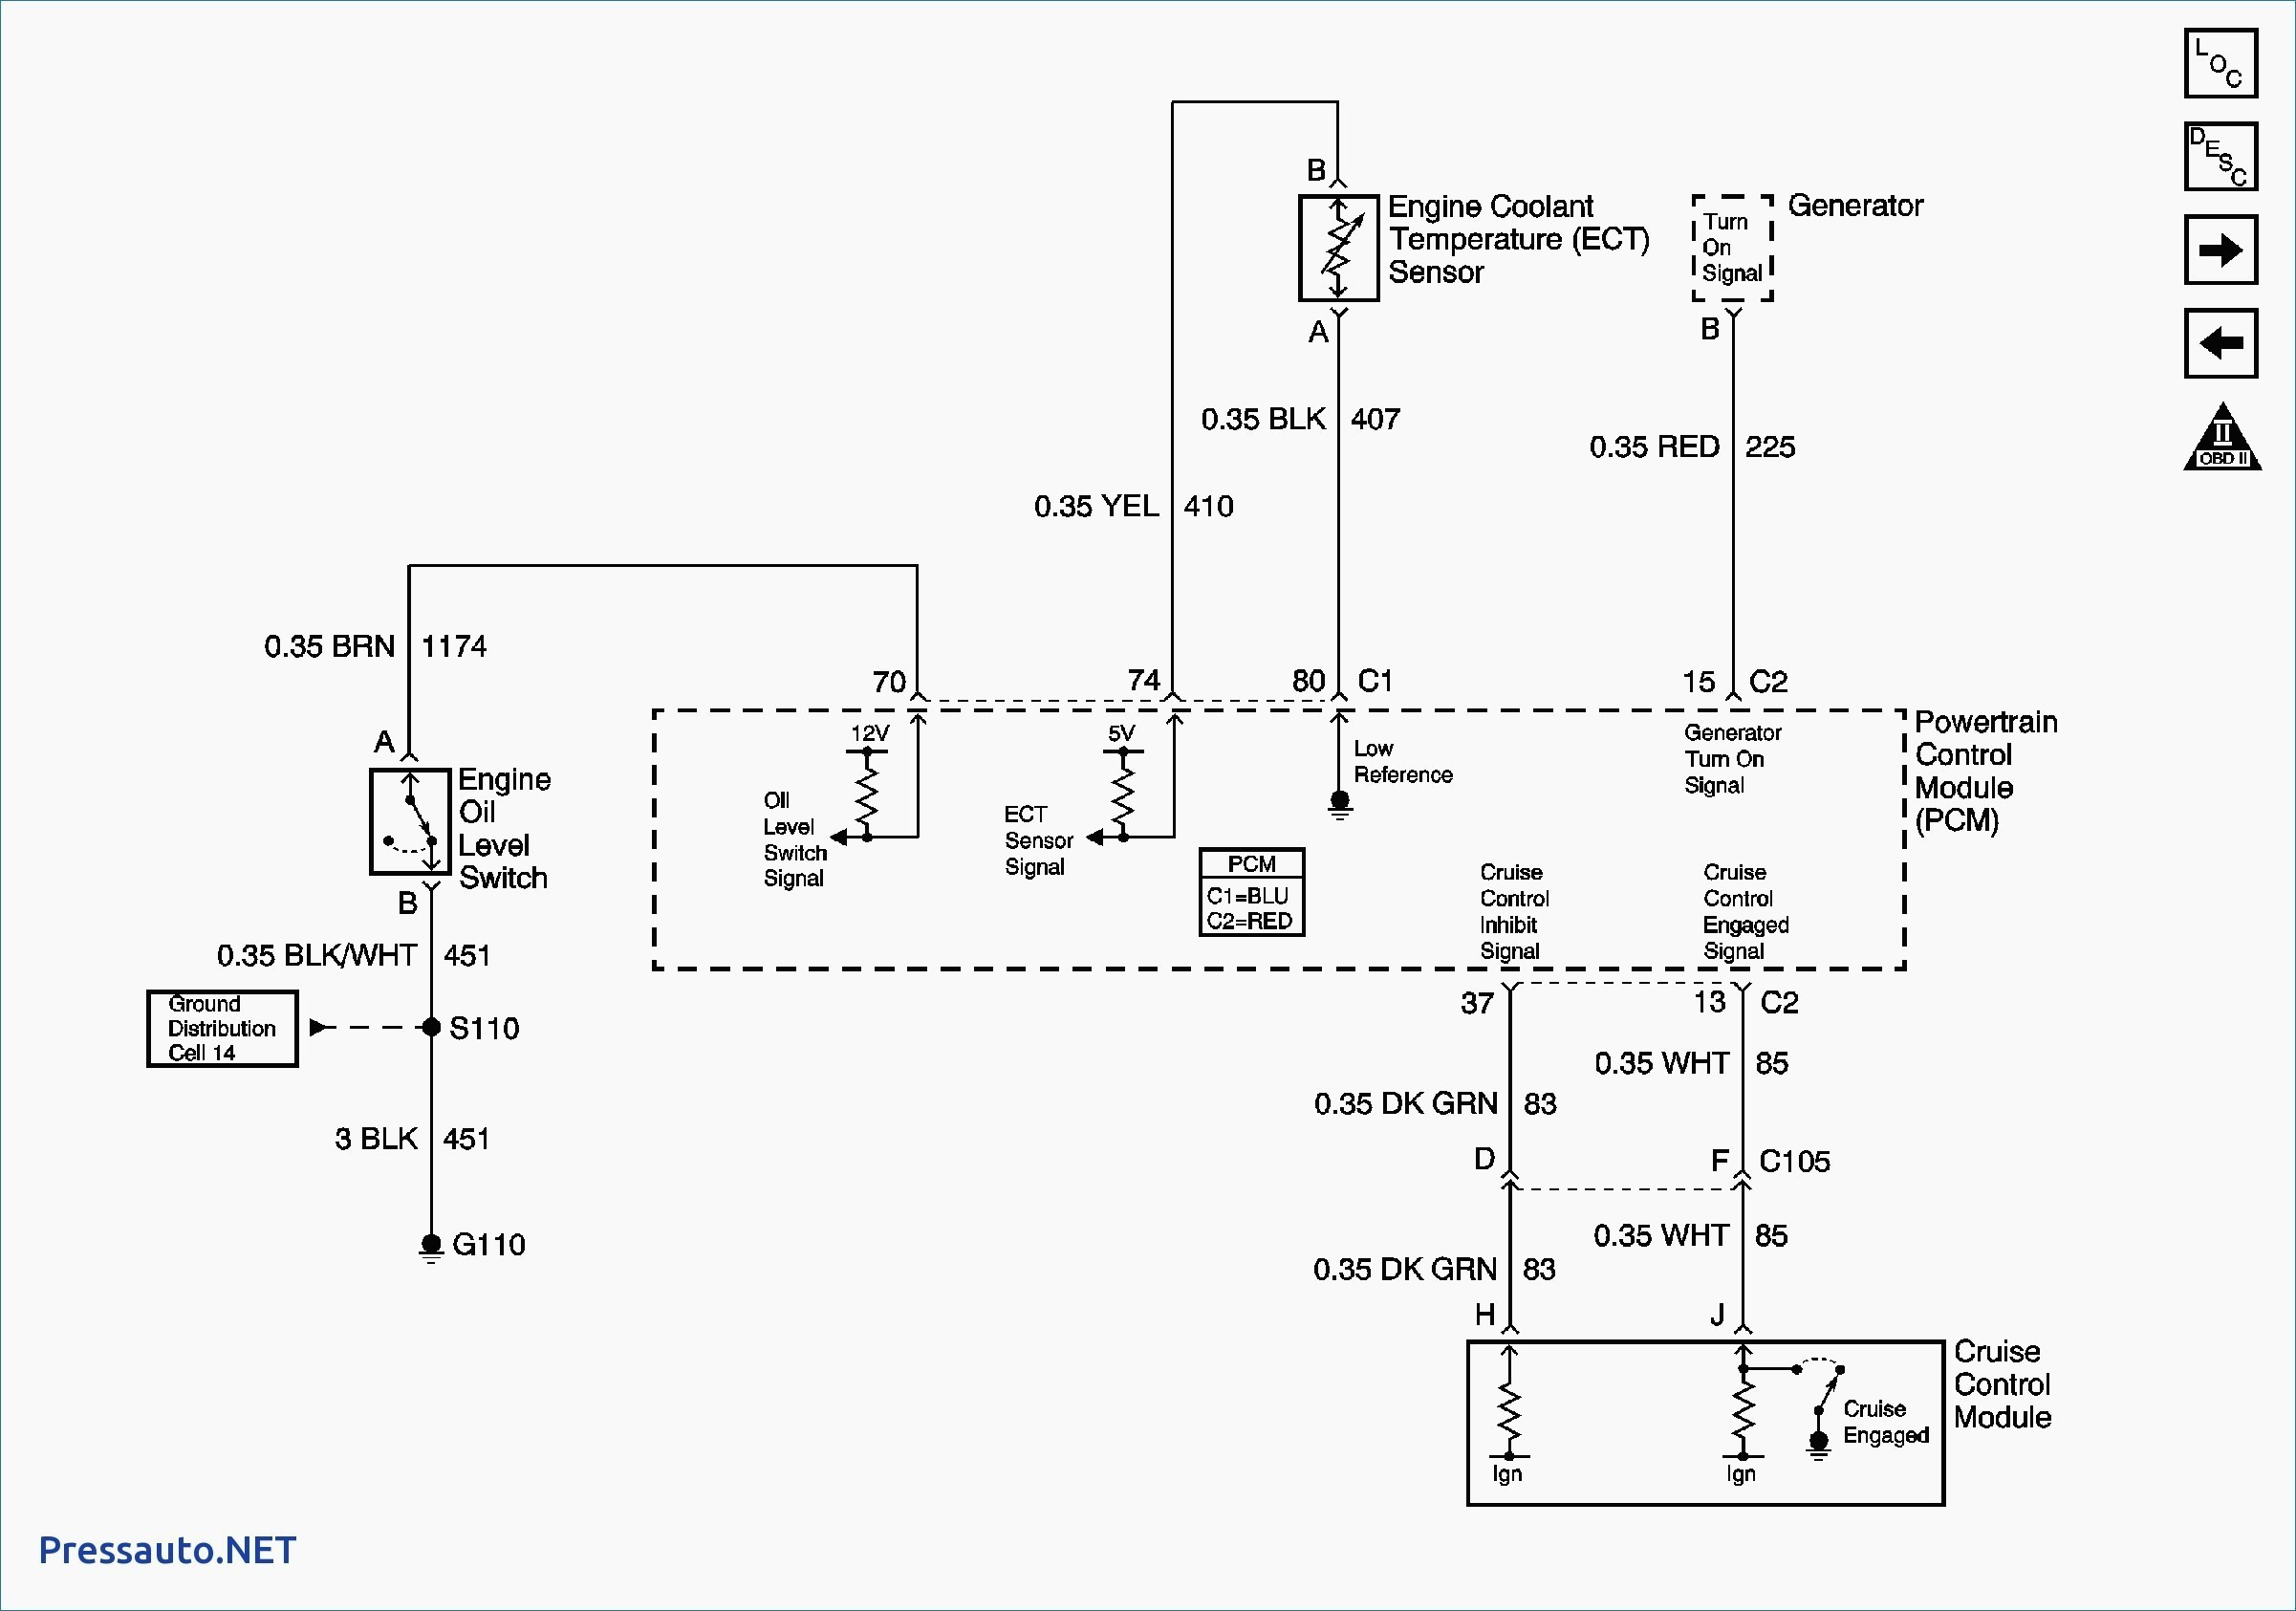 Well Pressure Switch Wiring Diagram Square D Pressure Switch Wiring Diagram Awesome Wiring Diagram Of Well Pressure Switch Wiring Diagram 3 Wire Oil Pressure Switch Wiring Diagram